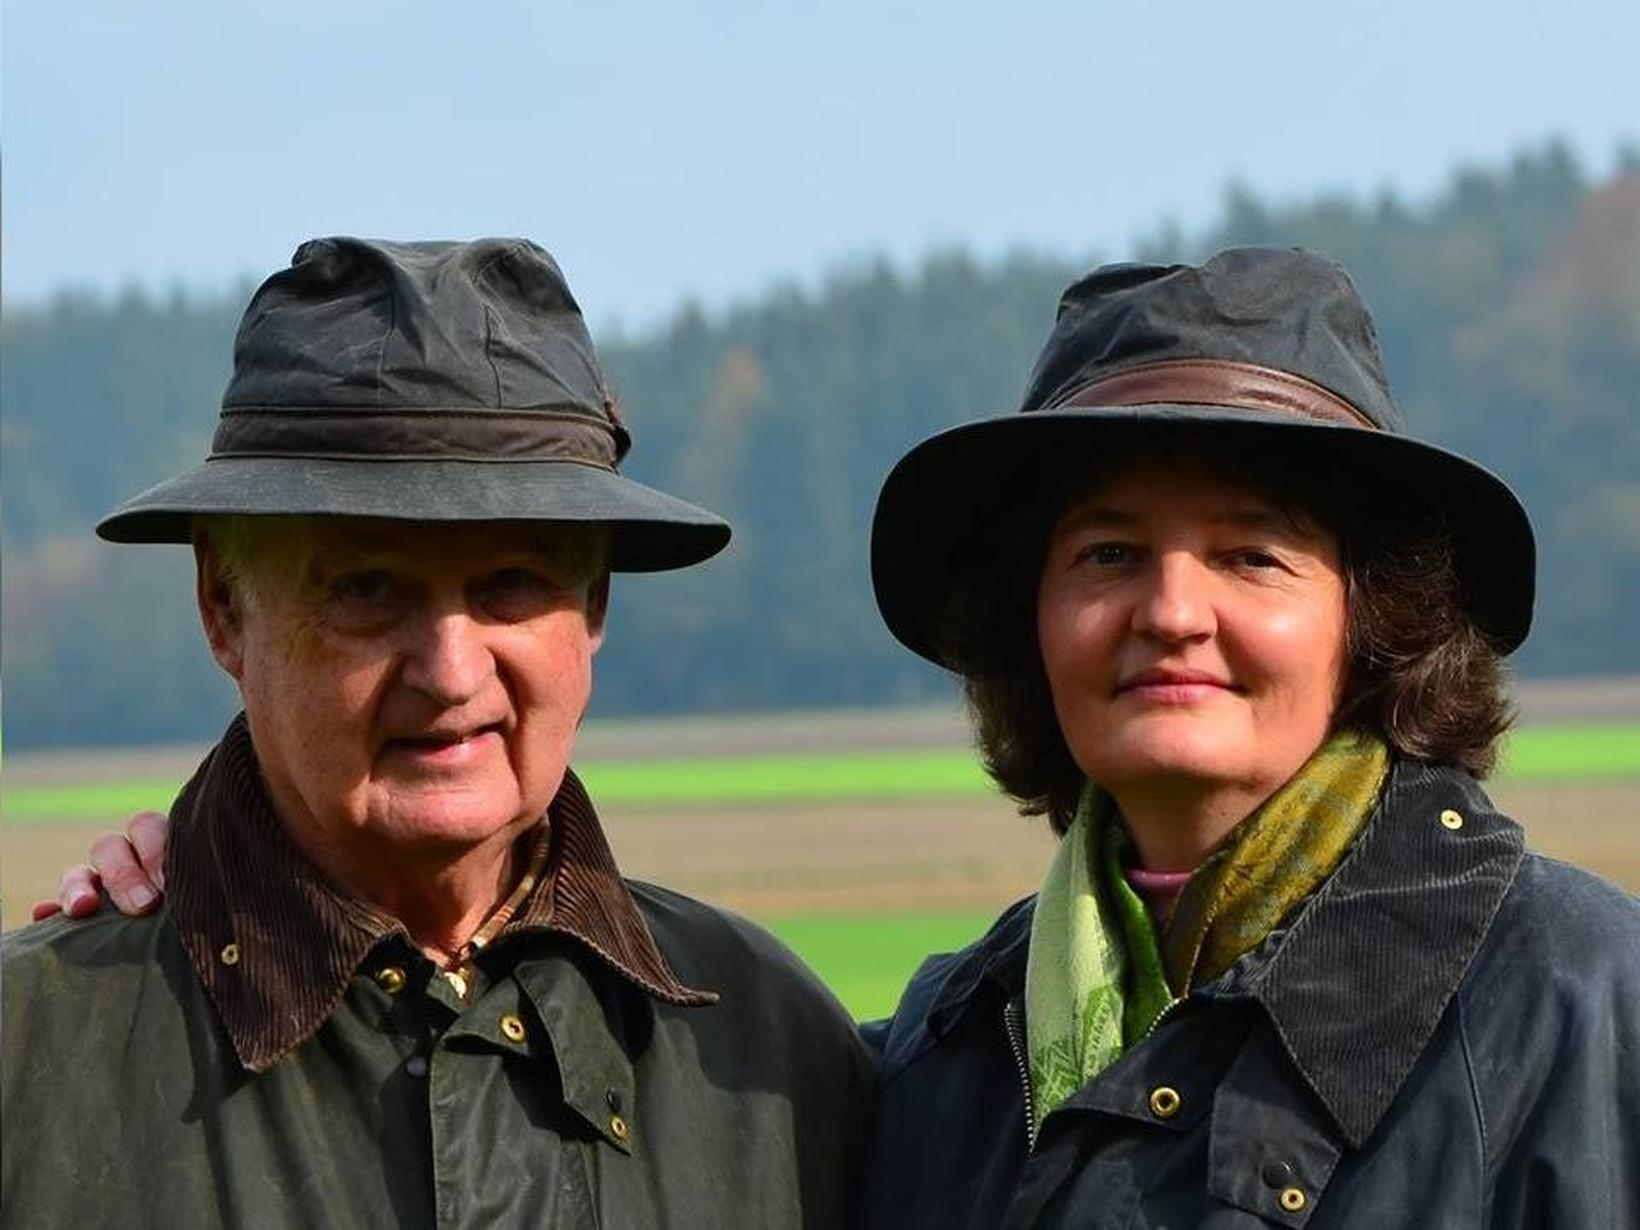 Nicola & Chris from Prien am Chiemsee, Germany